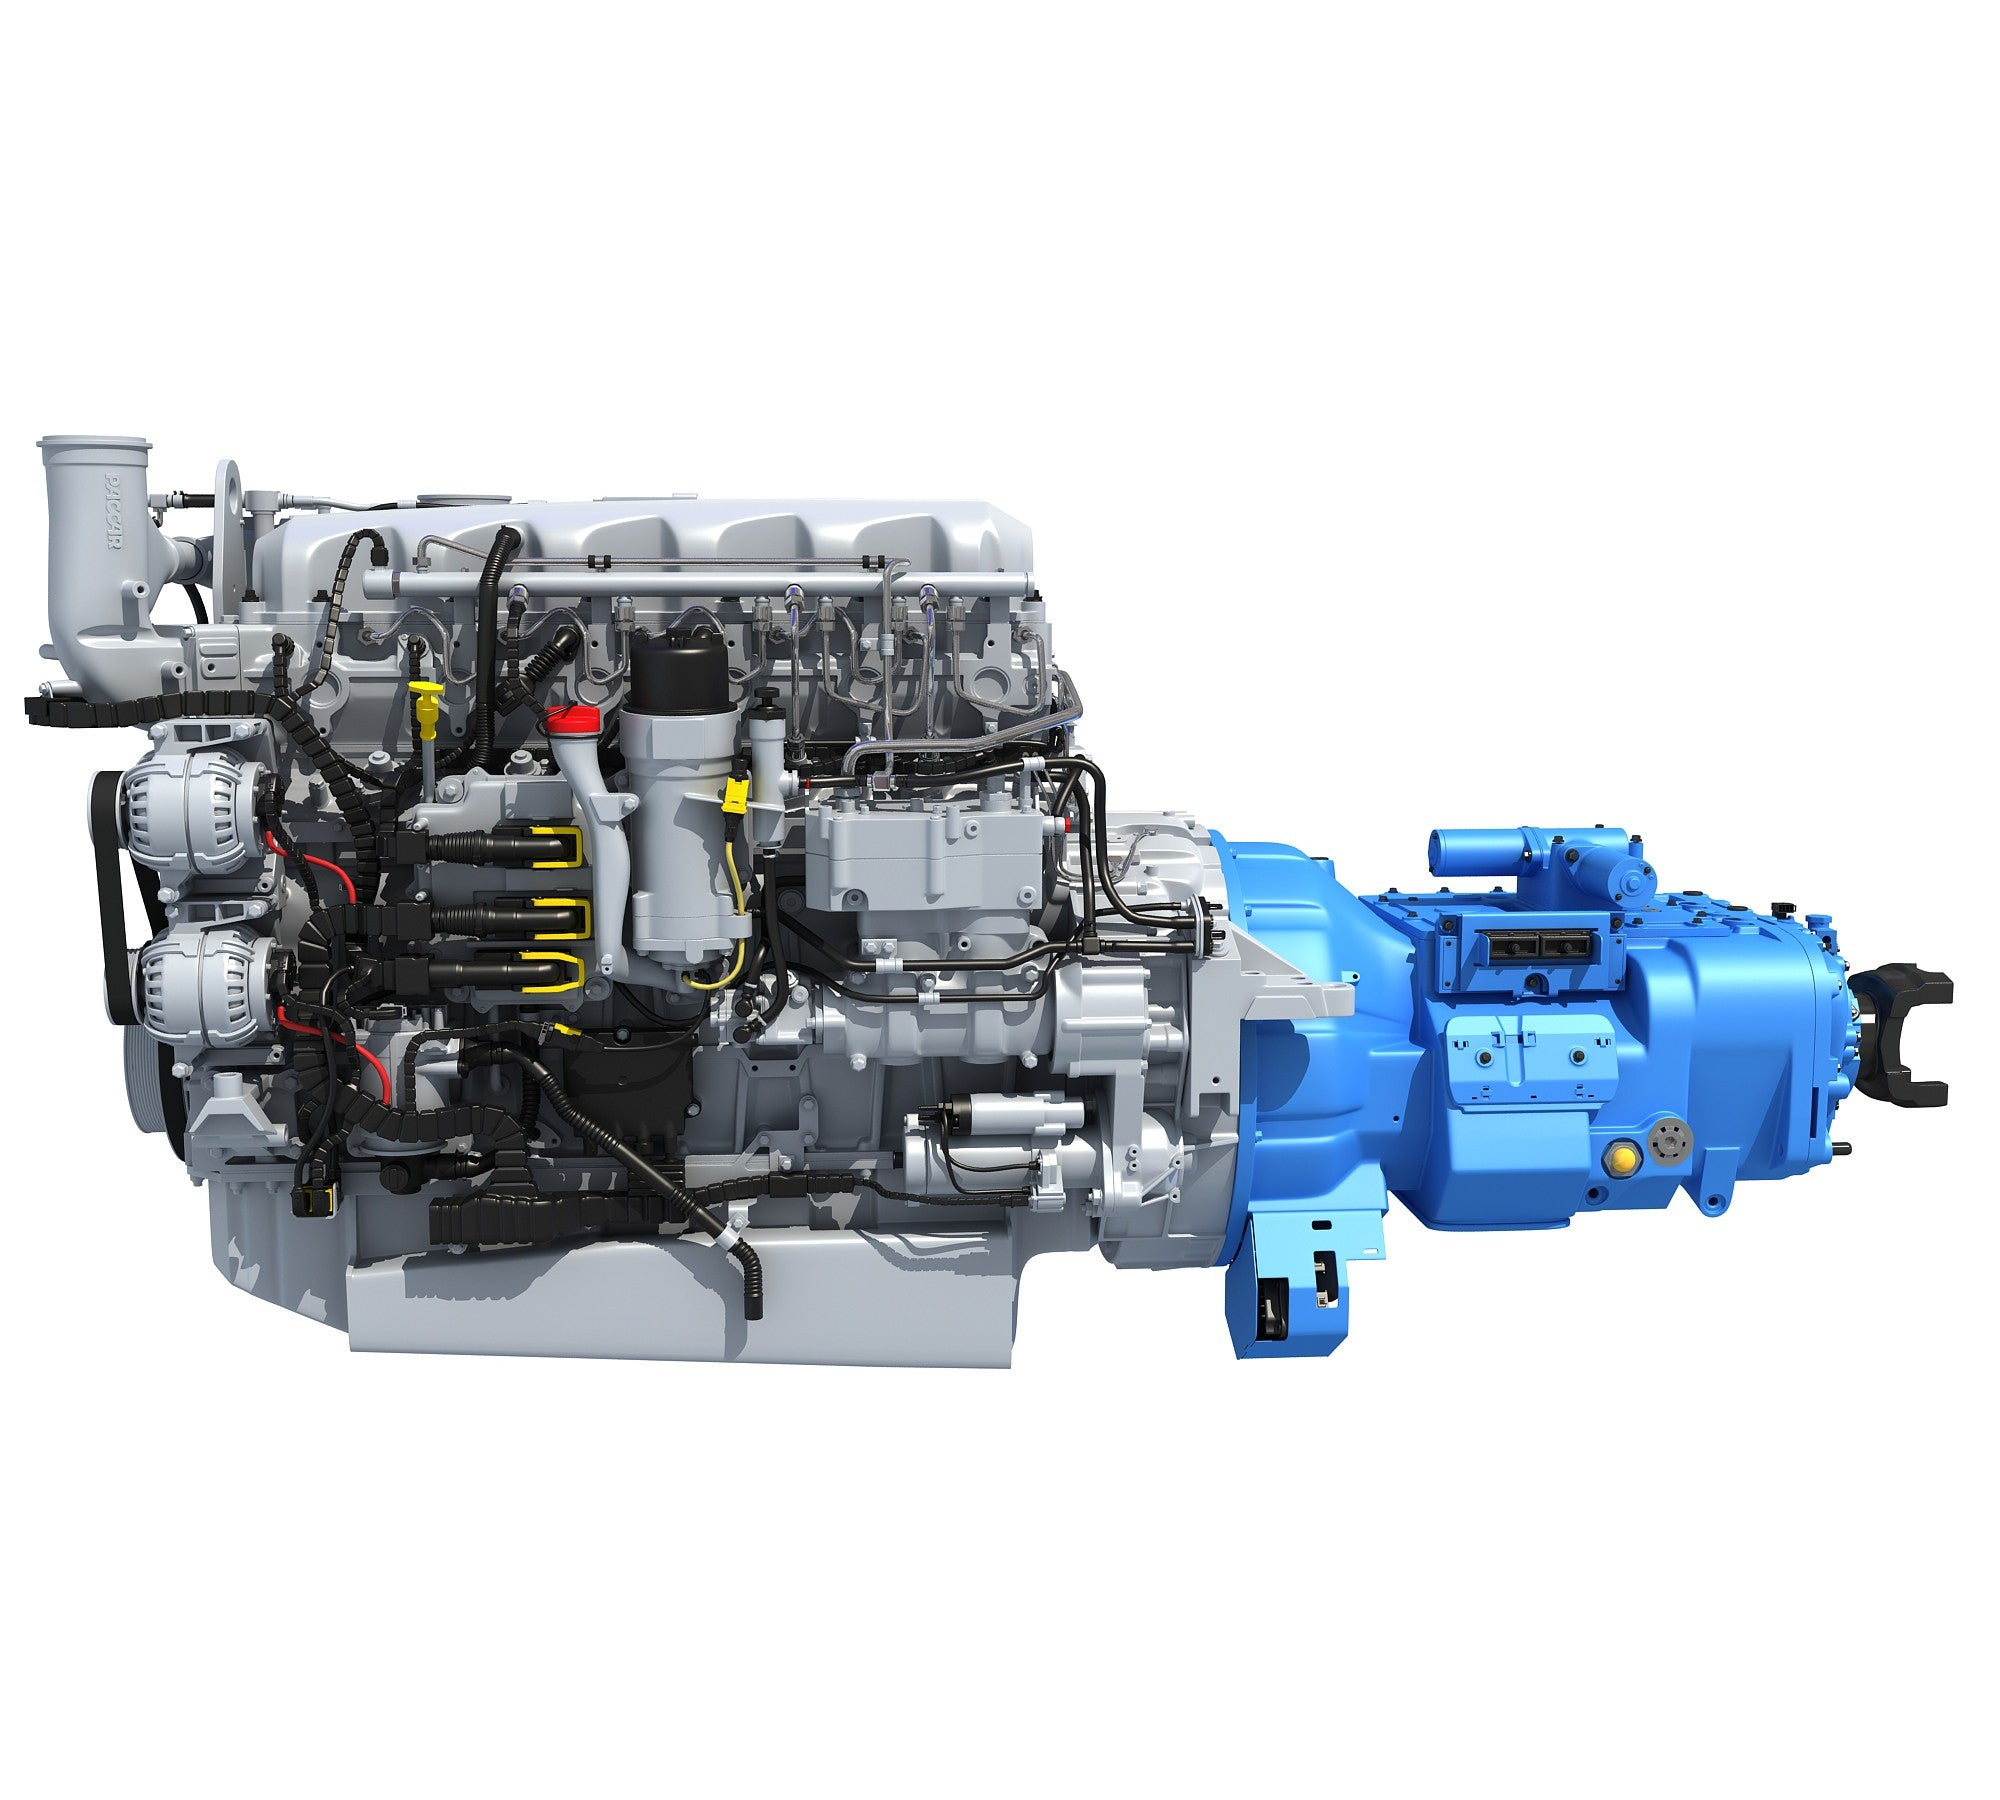 Engine And Transmission >> Paccar Mx 13 Engine With Transmission 3d Horse